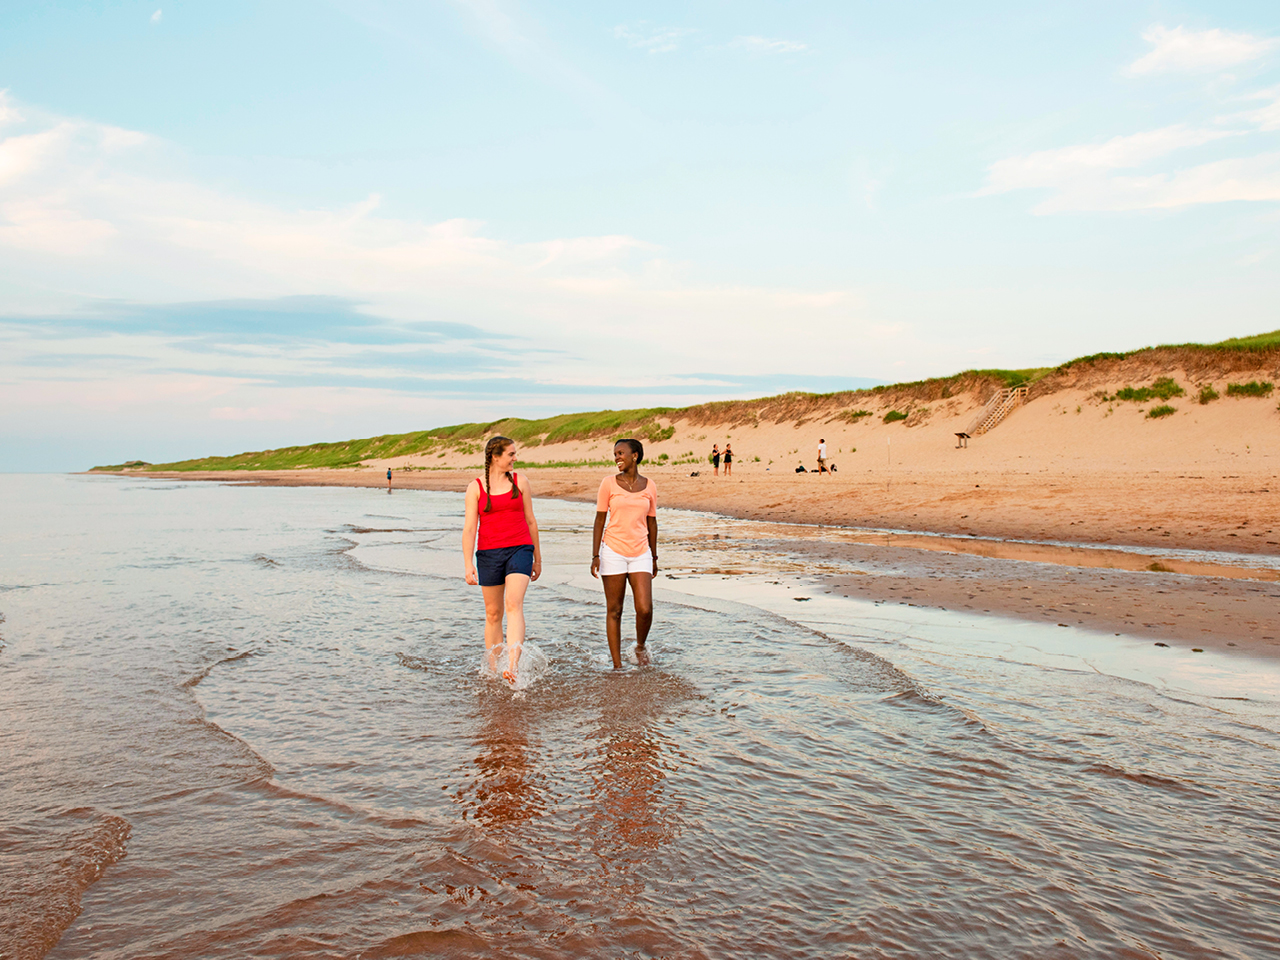 A pair of women tredge through low tides on the beach